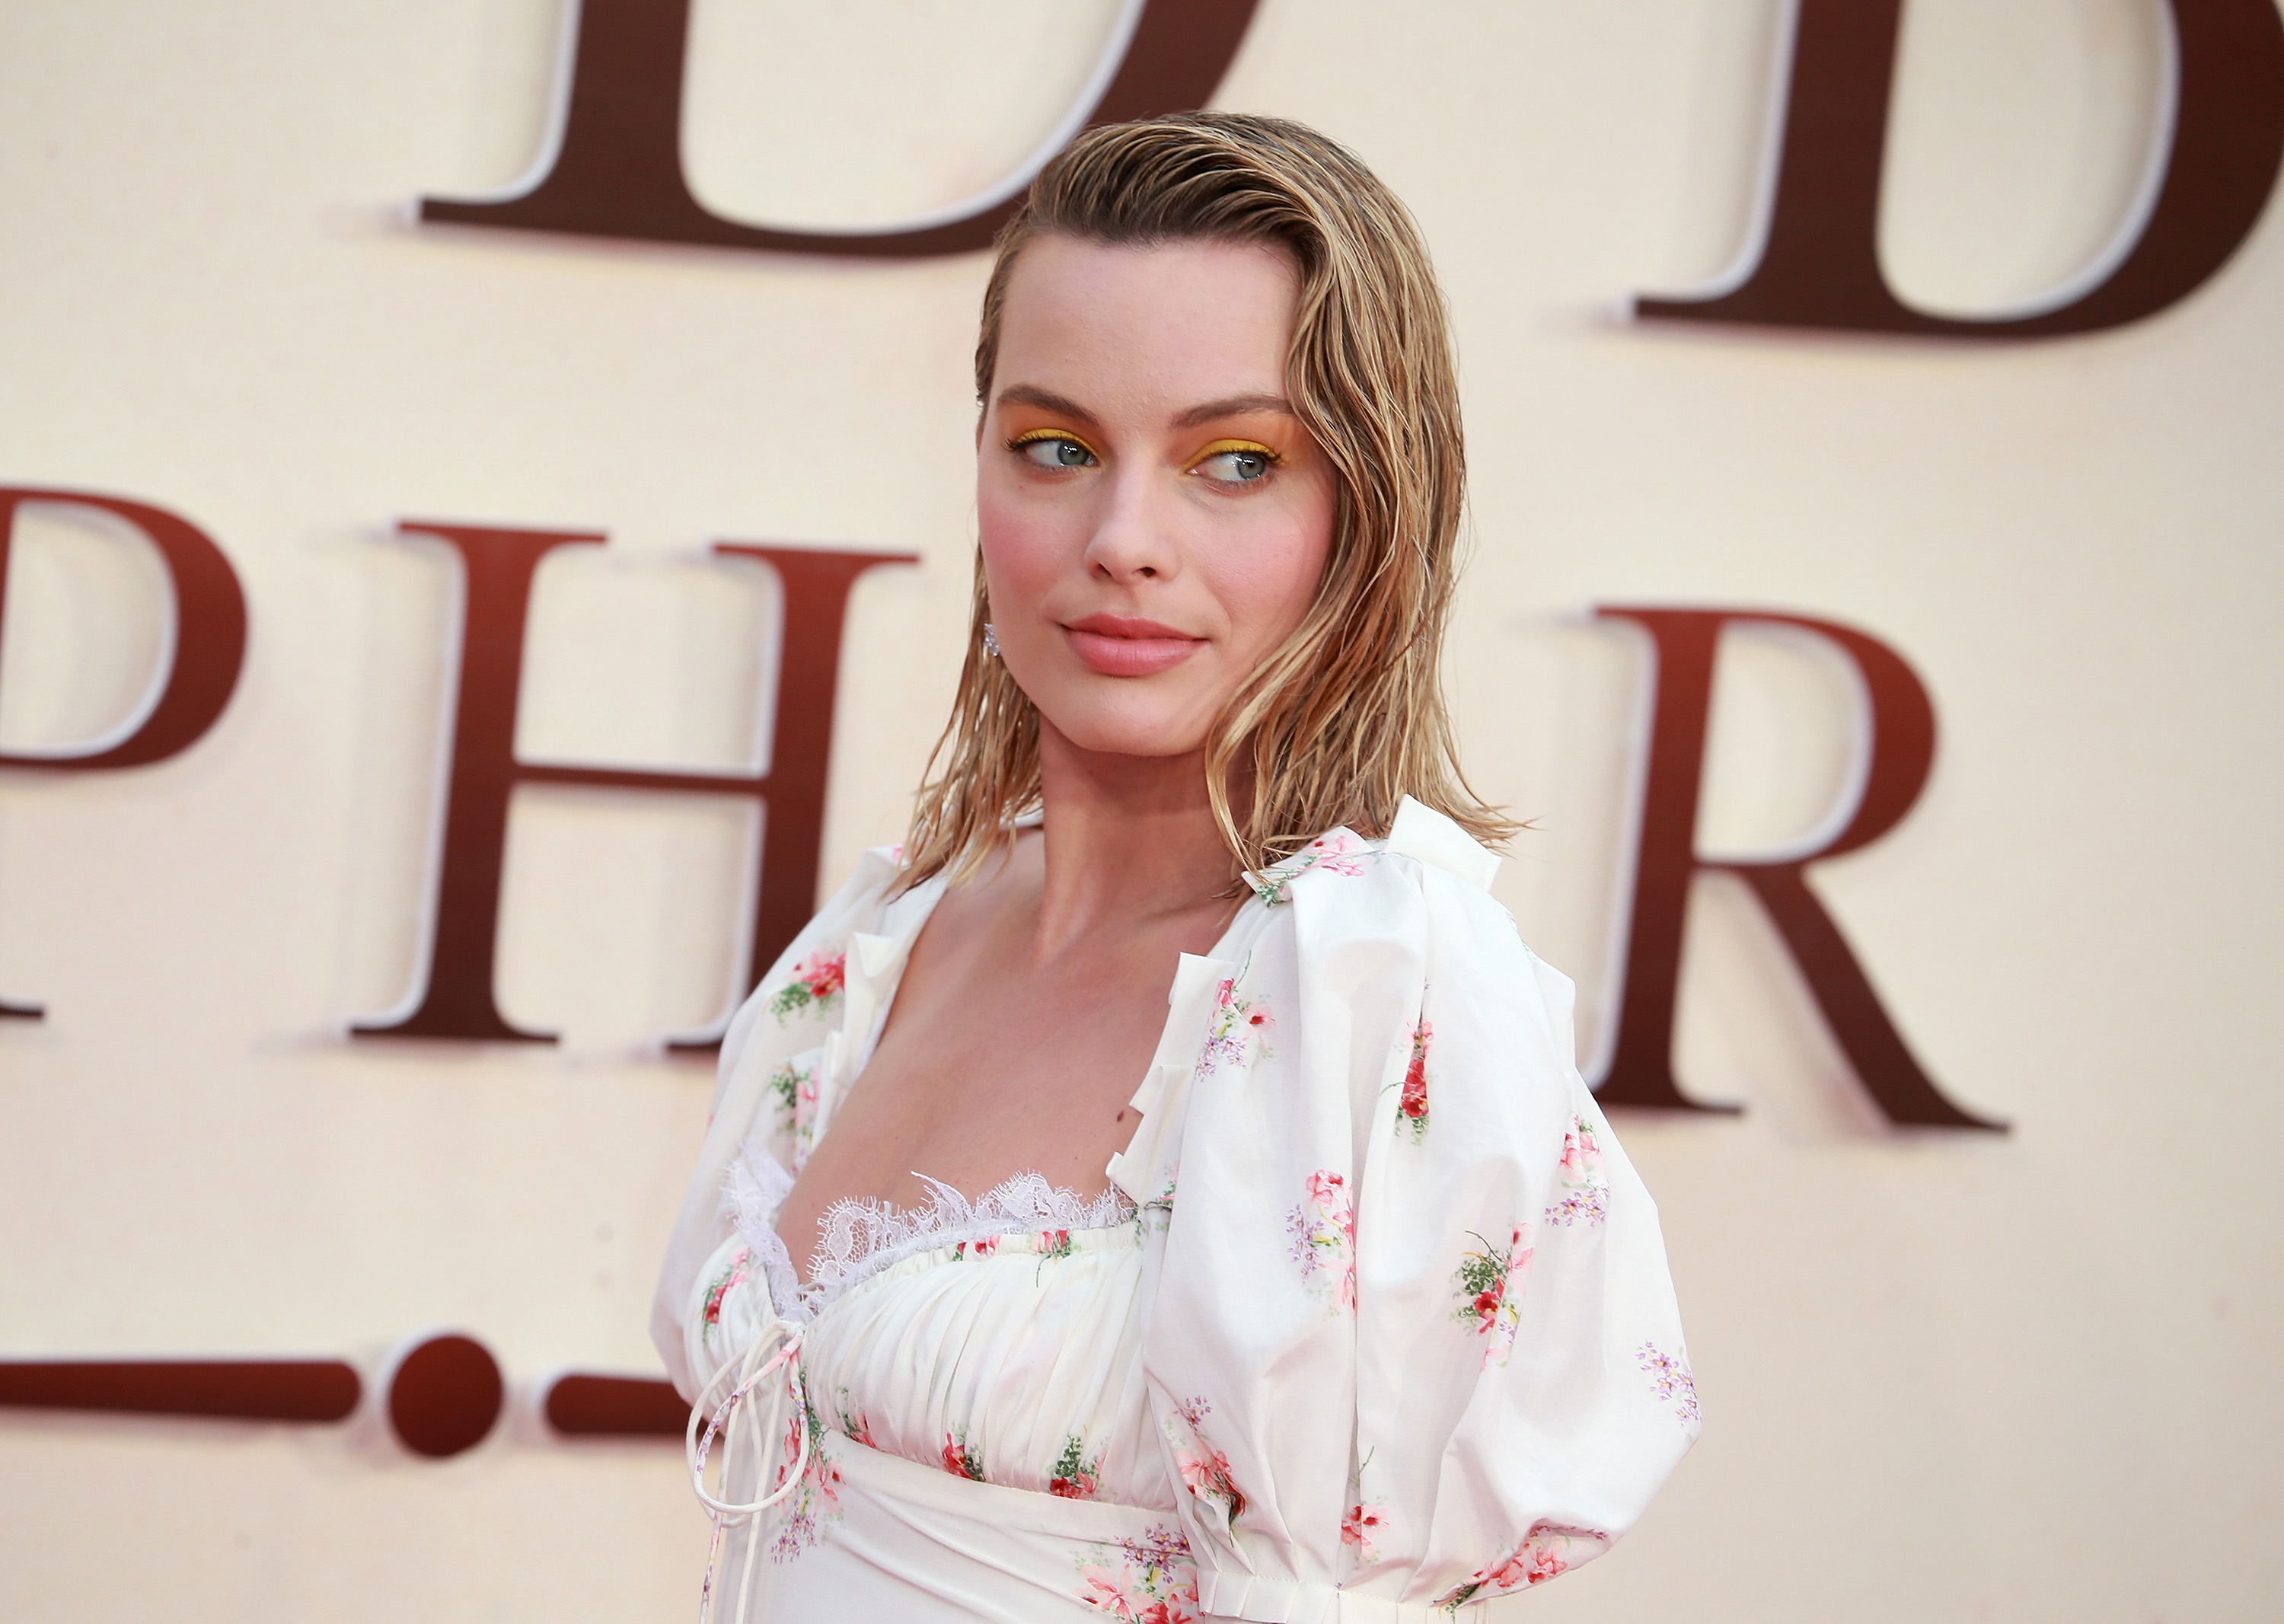 Margot Robbie wrote an open letter to Hollywood